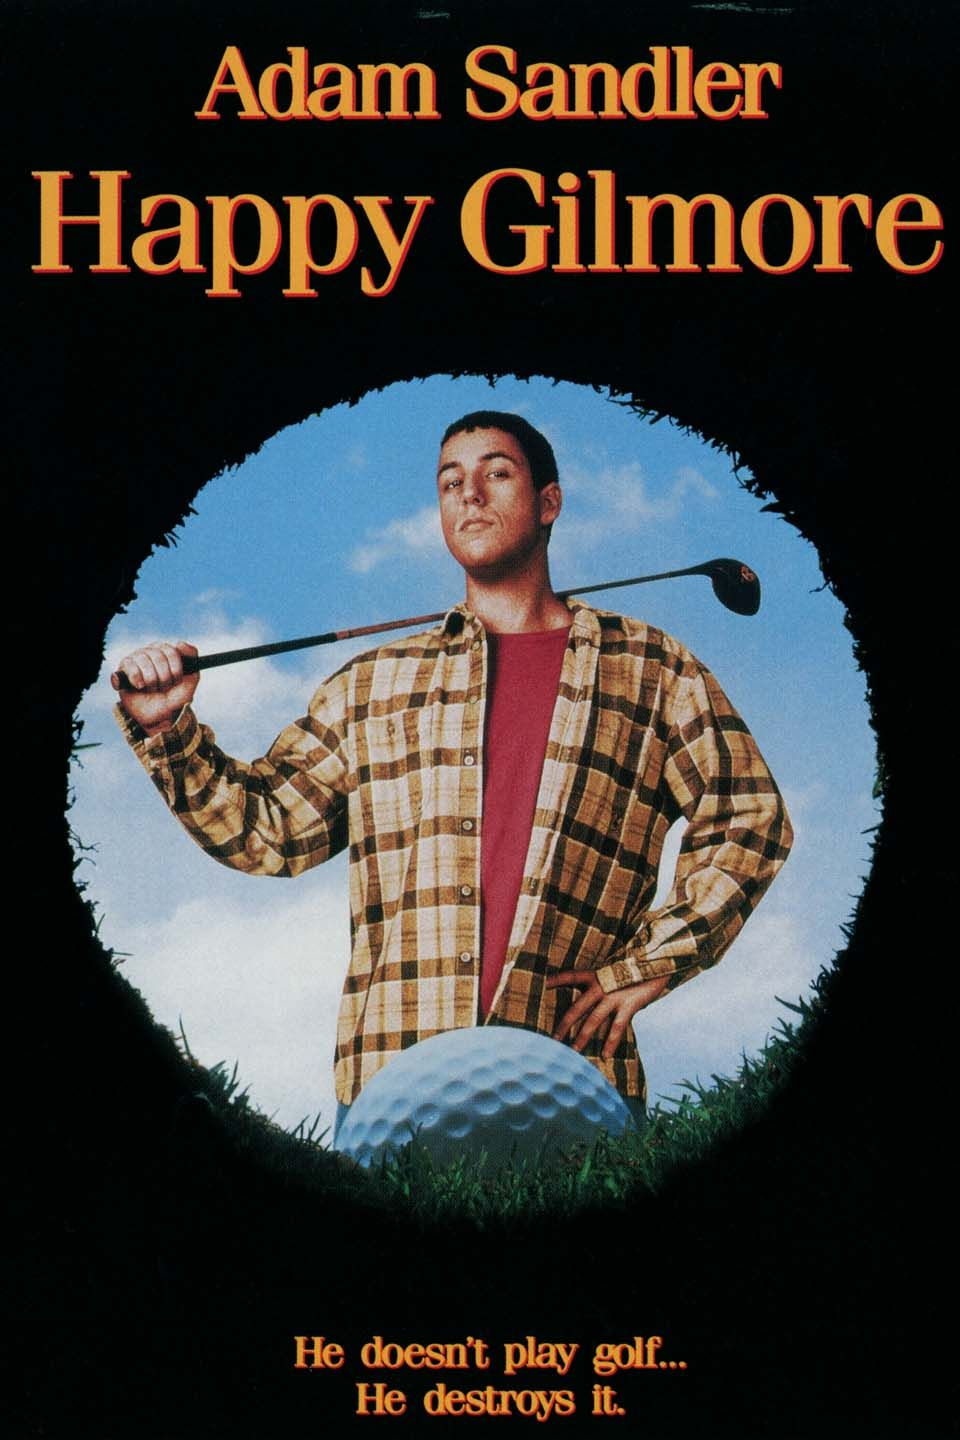 Happy gilmore i am an adam sandler fan and this is my